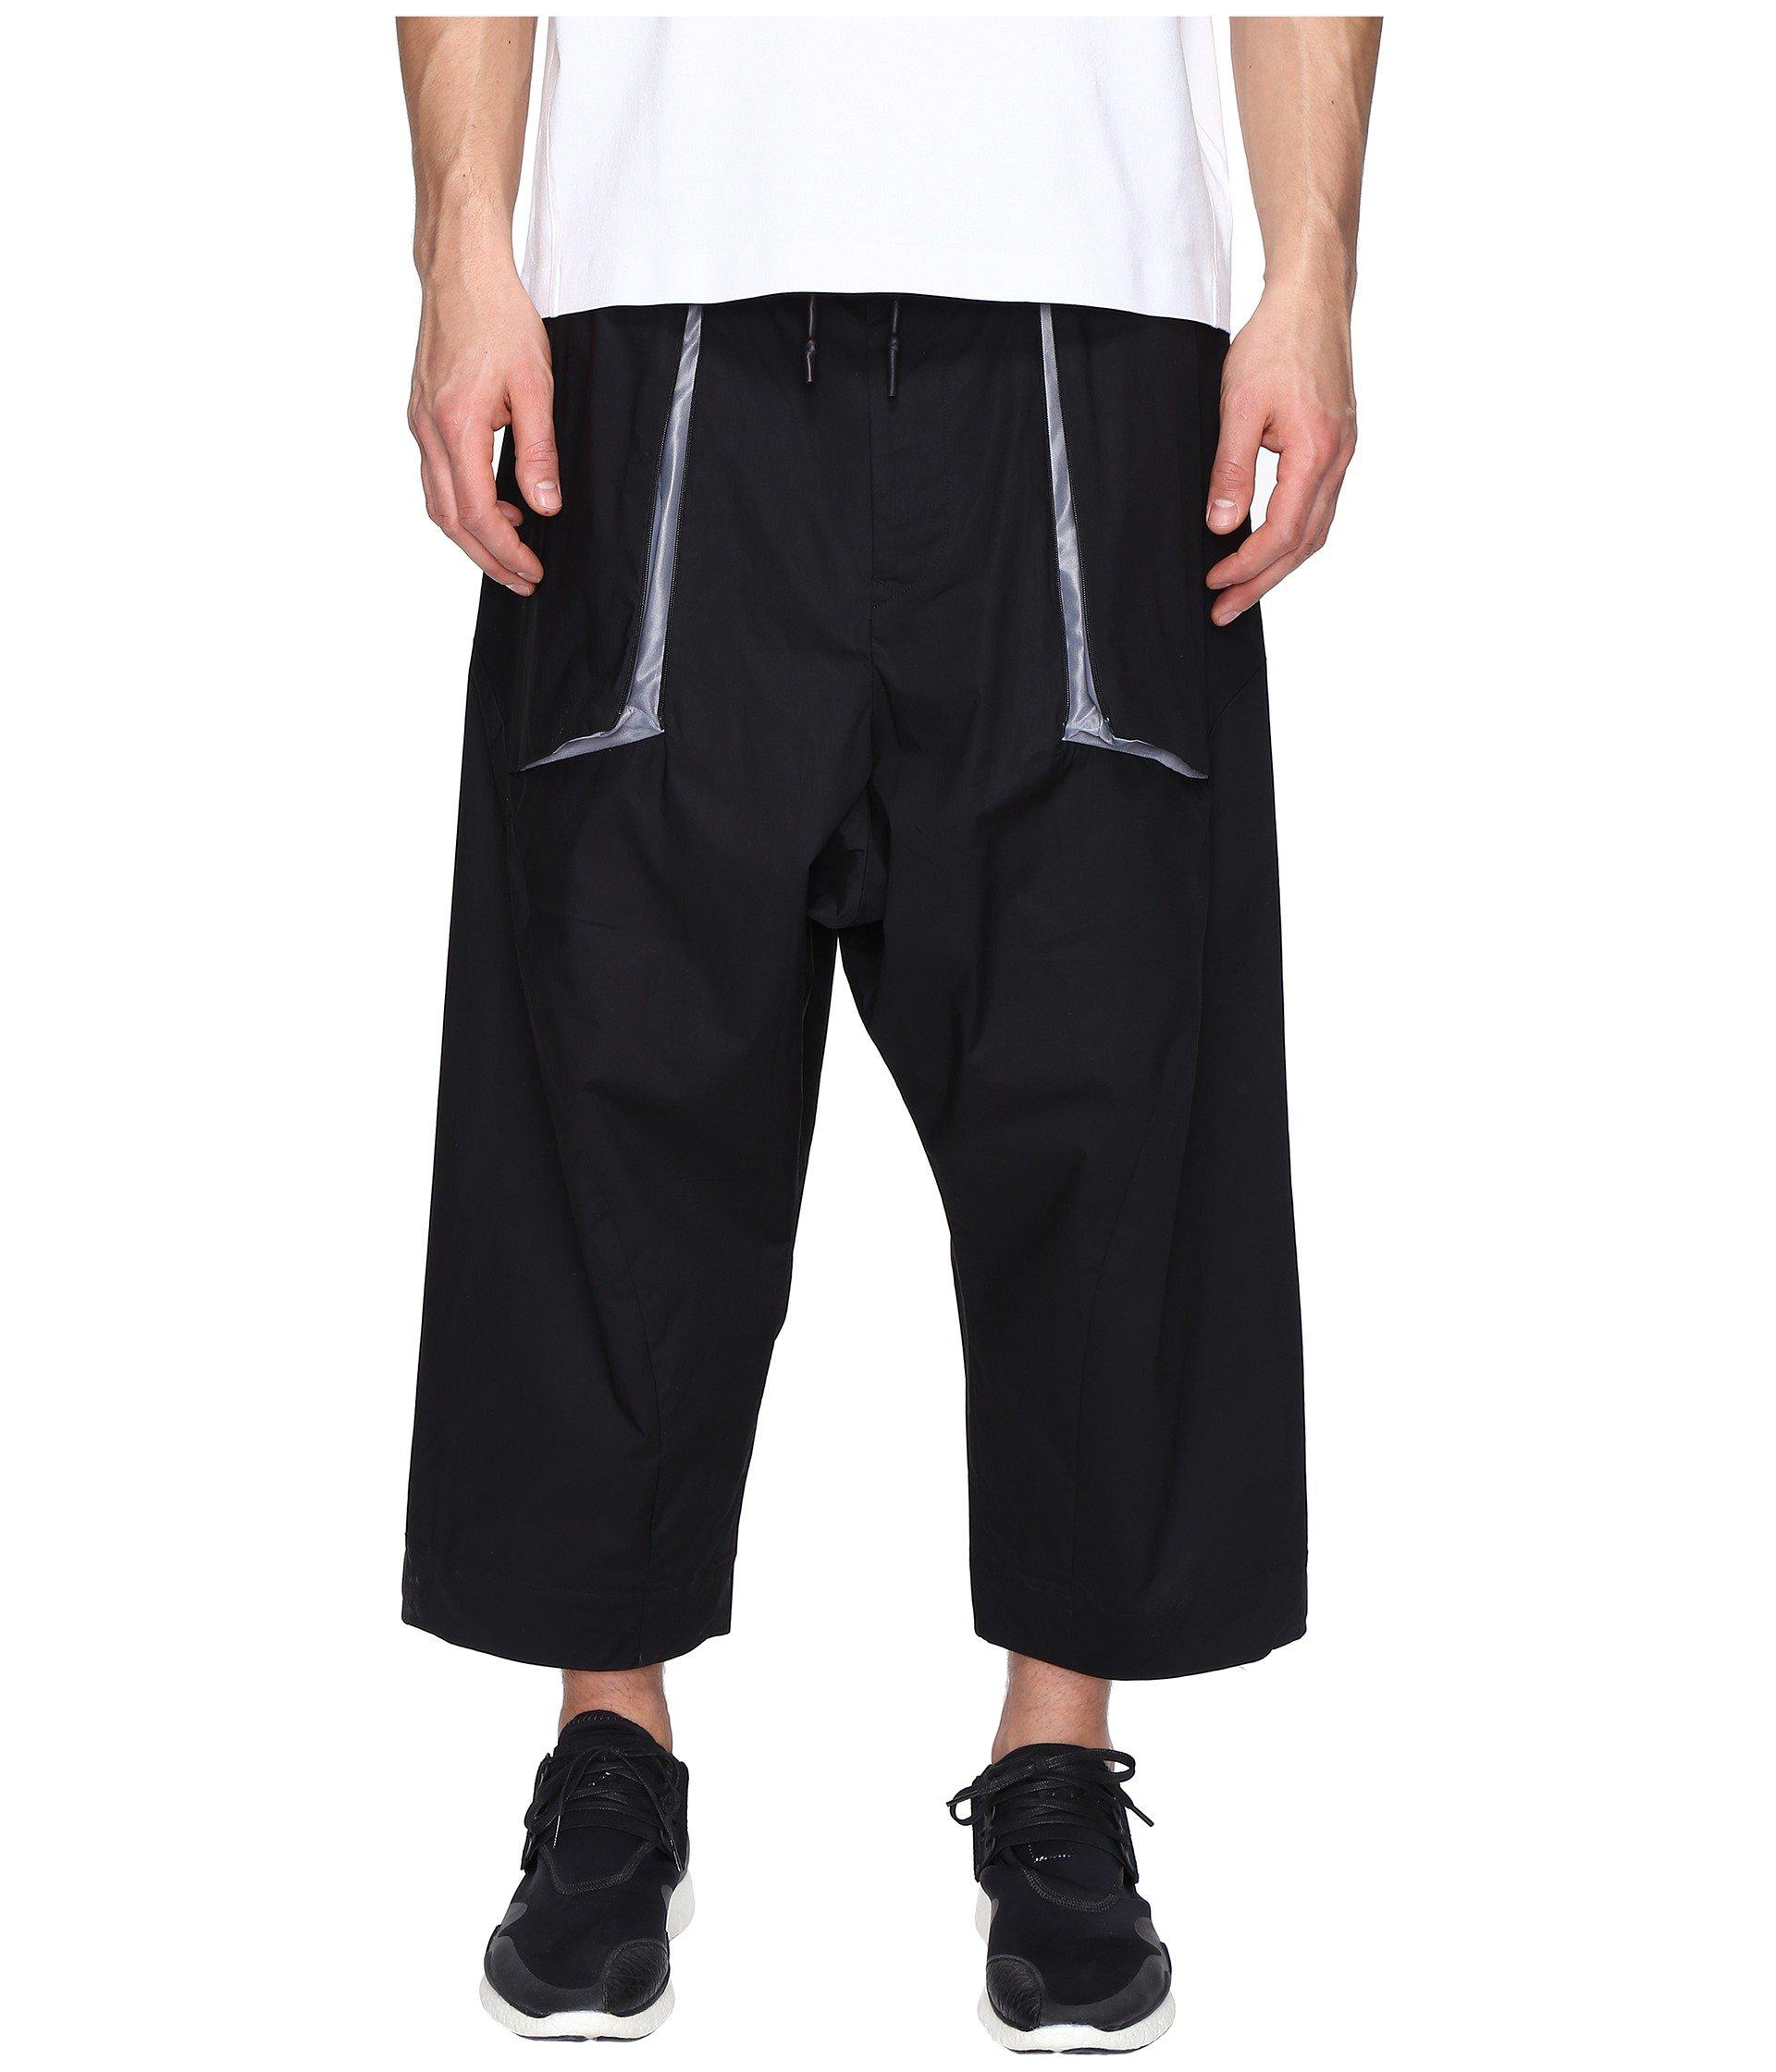 633b6307b394e Lyst - Y-3 M Mil Spacer Pants in Black for Men - Save 50%